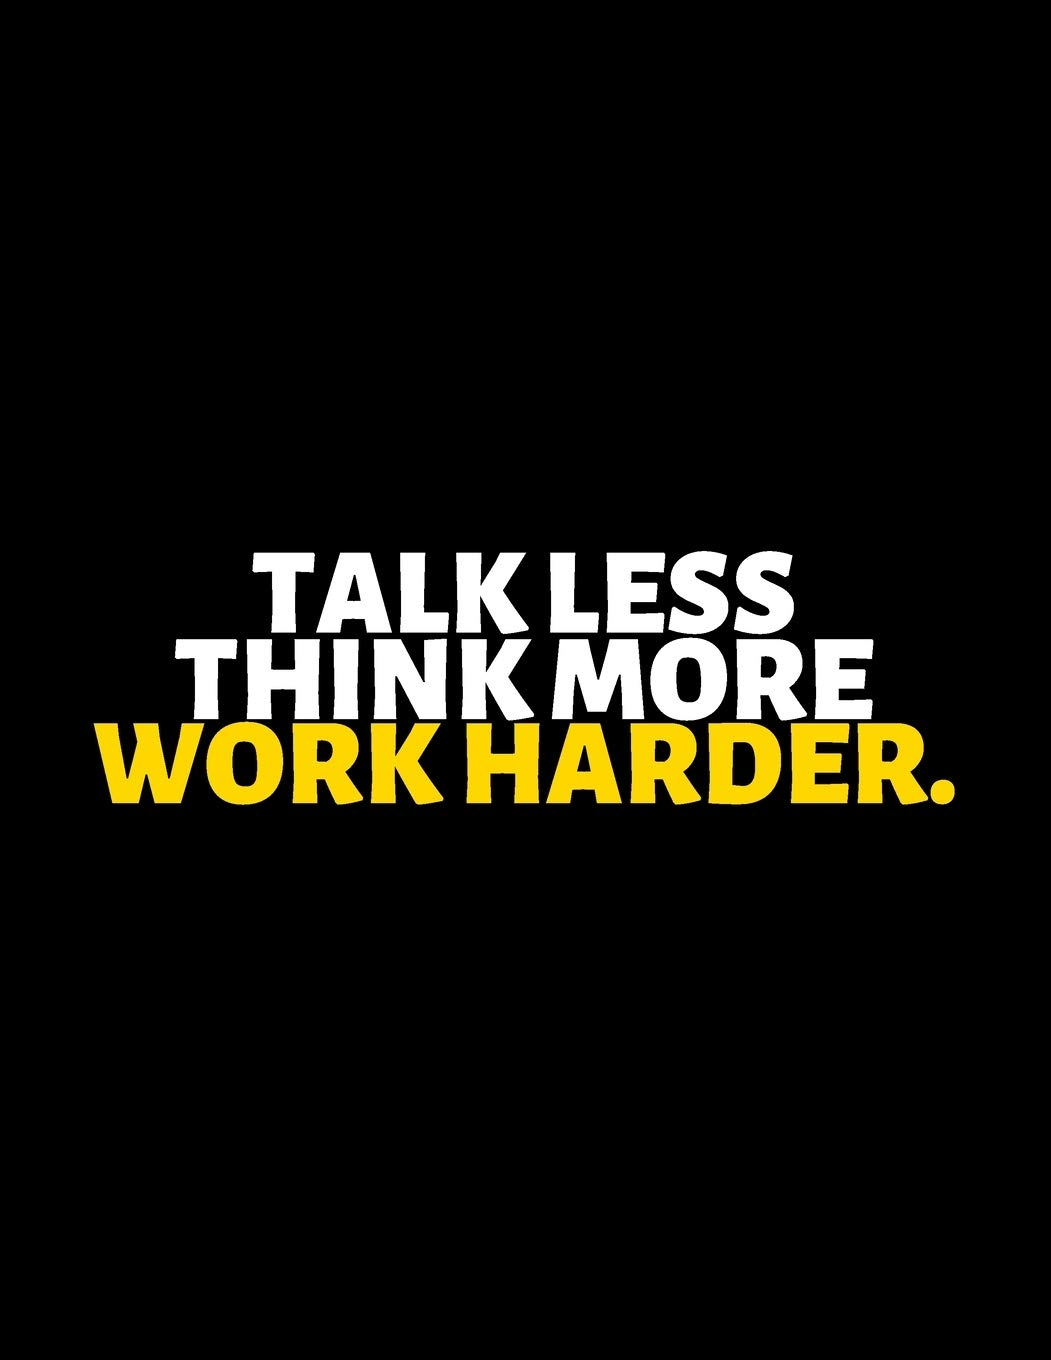 [Image] Talk less, think more, work harder